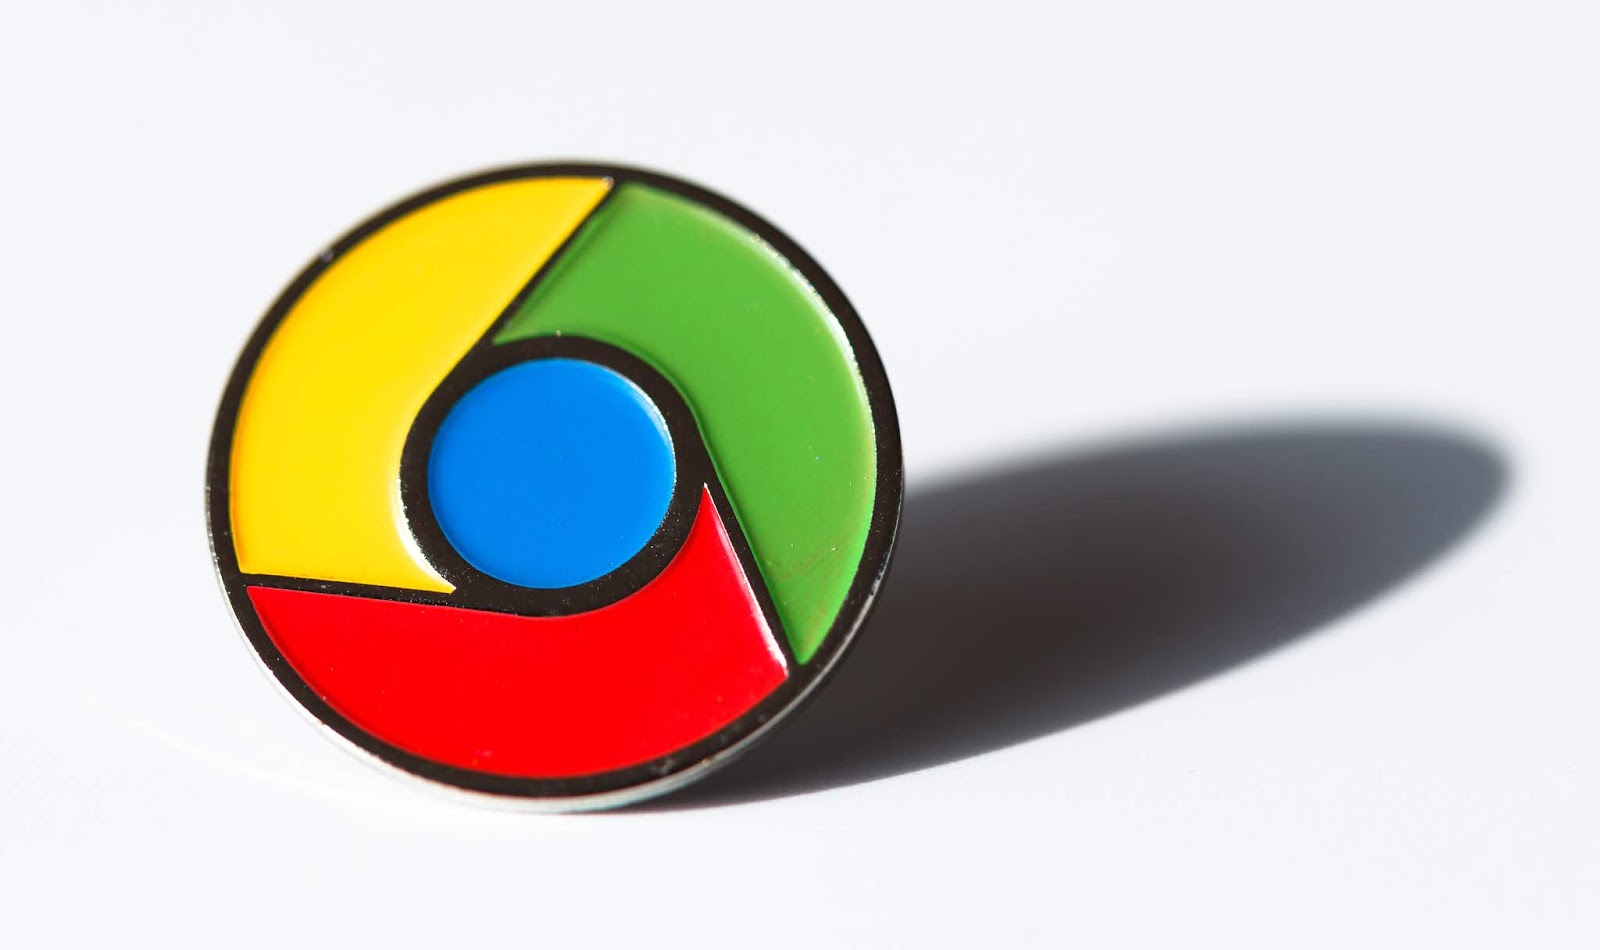 Tackling the issue of Unwanted Downloads, Google Chrome may soon